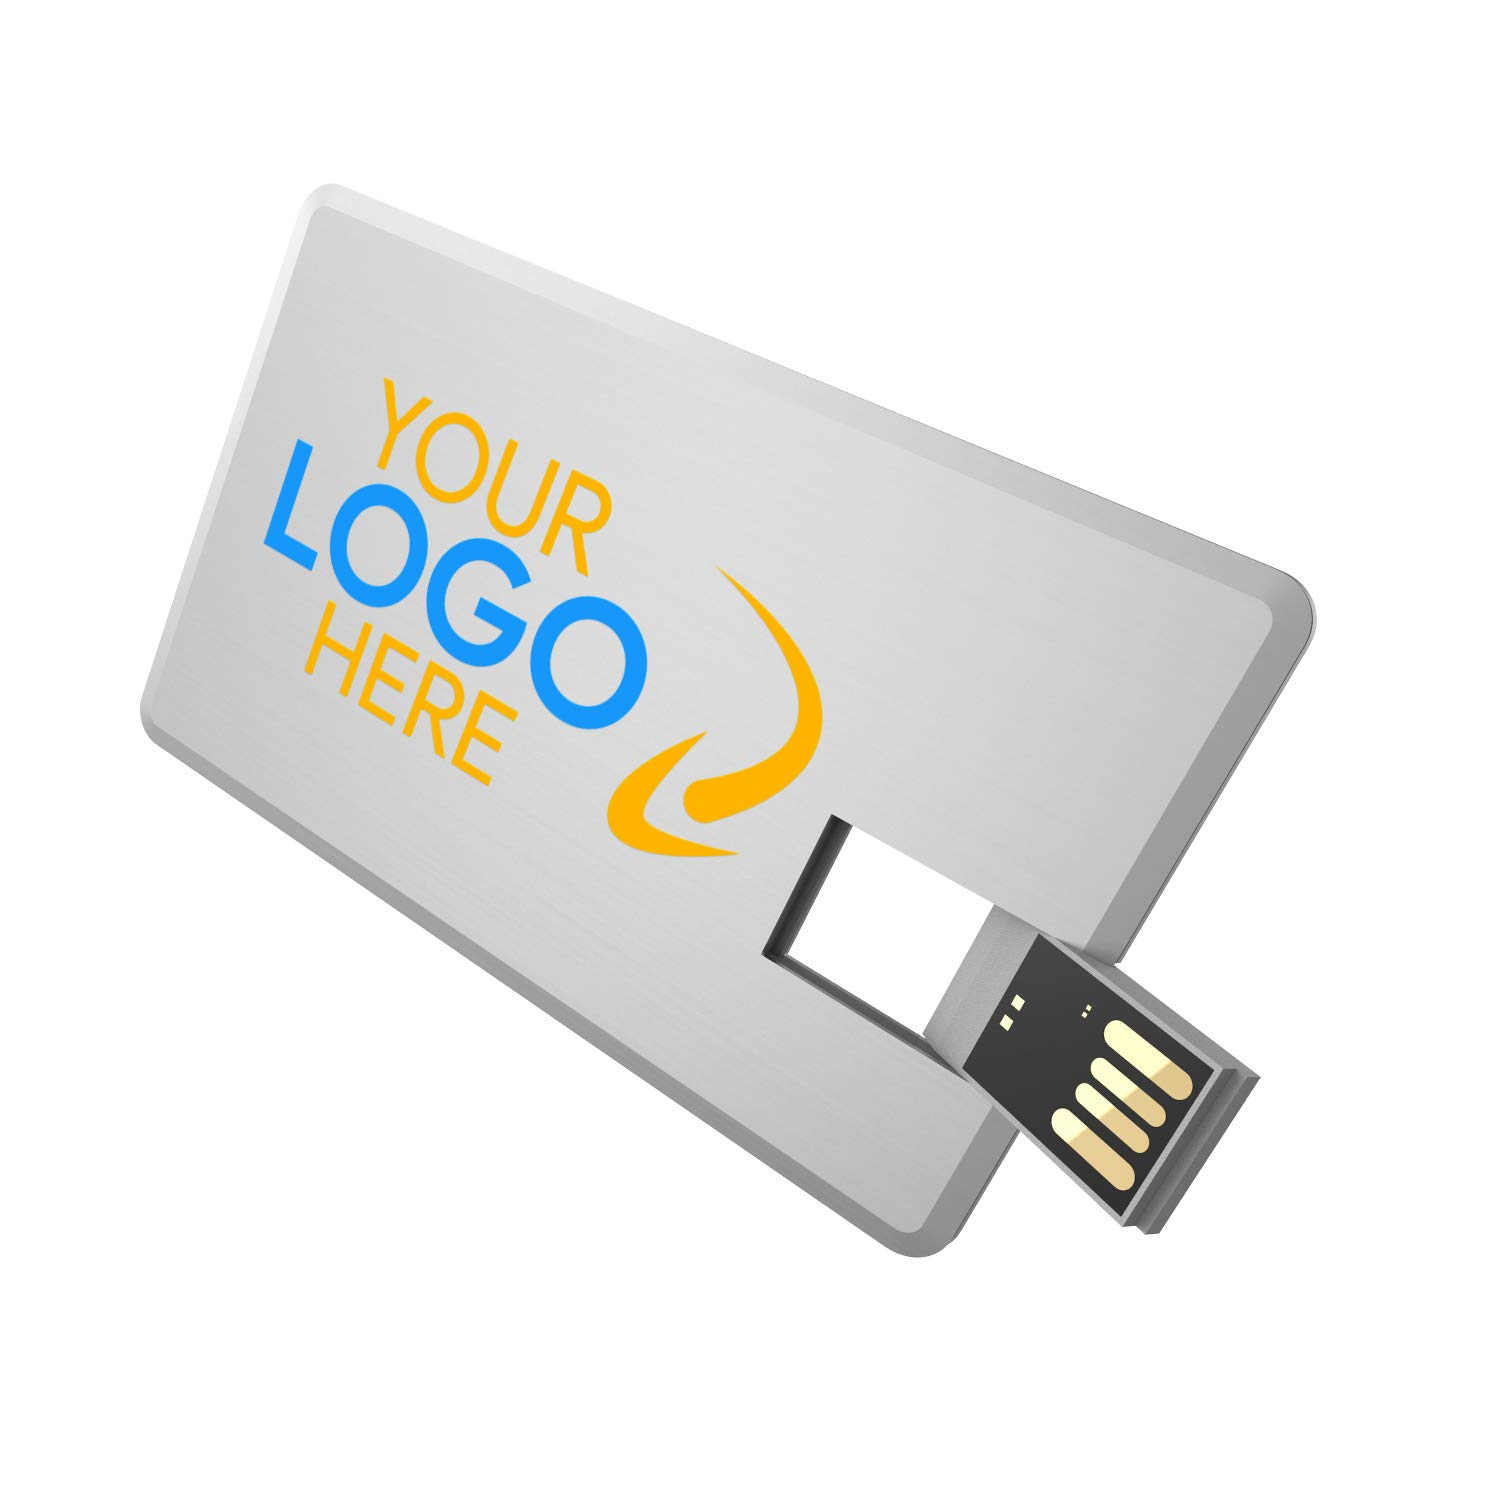 Custom Business/Credit Card Wallet Flash Drive - Full Color Edge-to-Edge 2 Sided Logo Imprint - 128GB - Silver Metal - Printed in The USA - 200 Pack